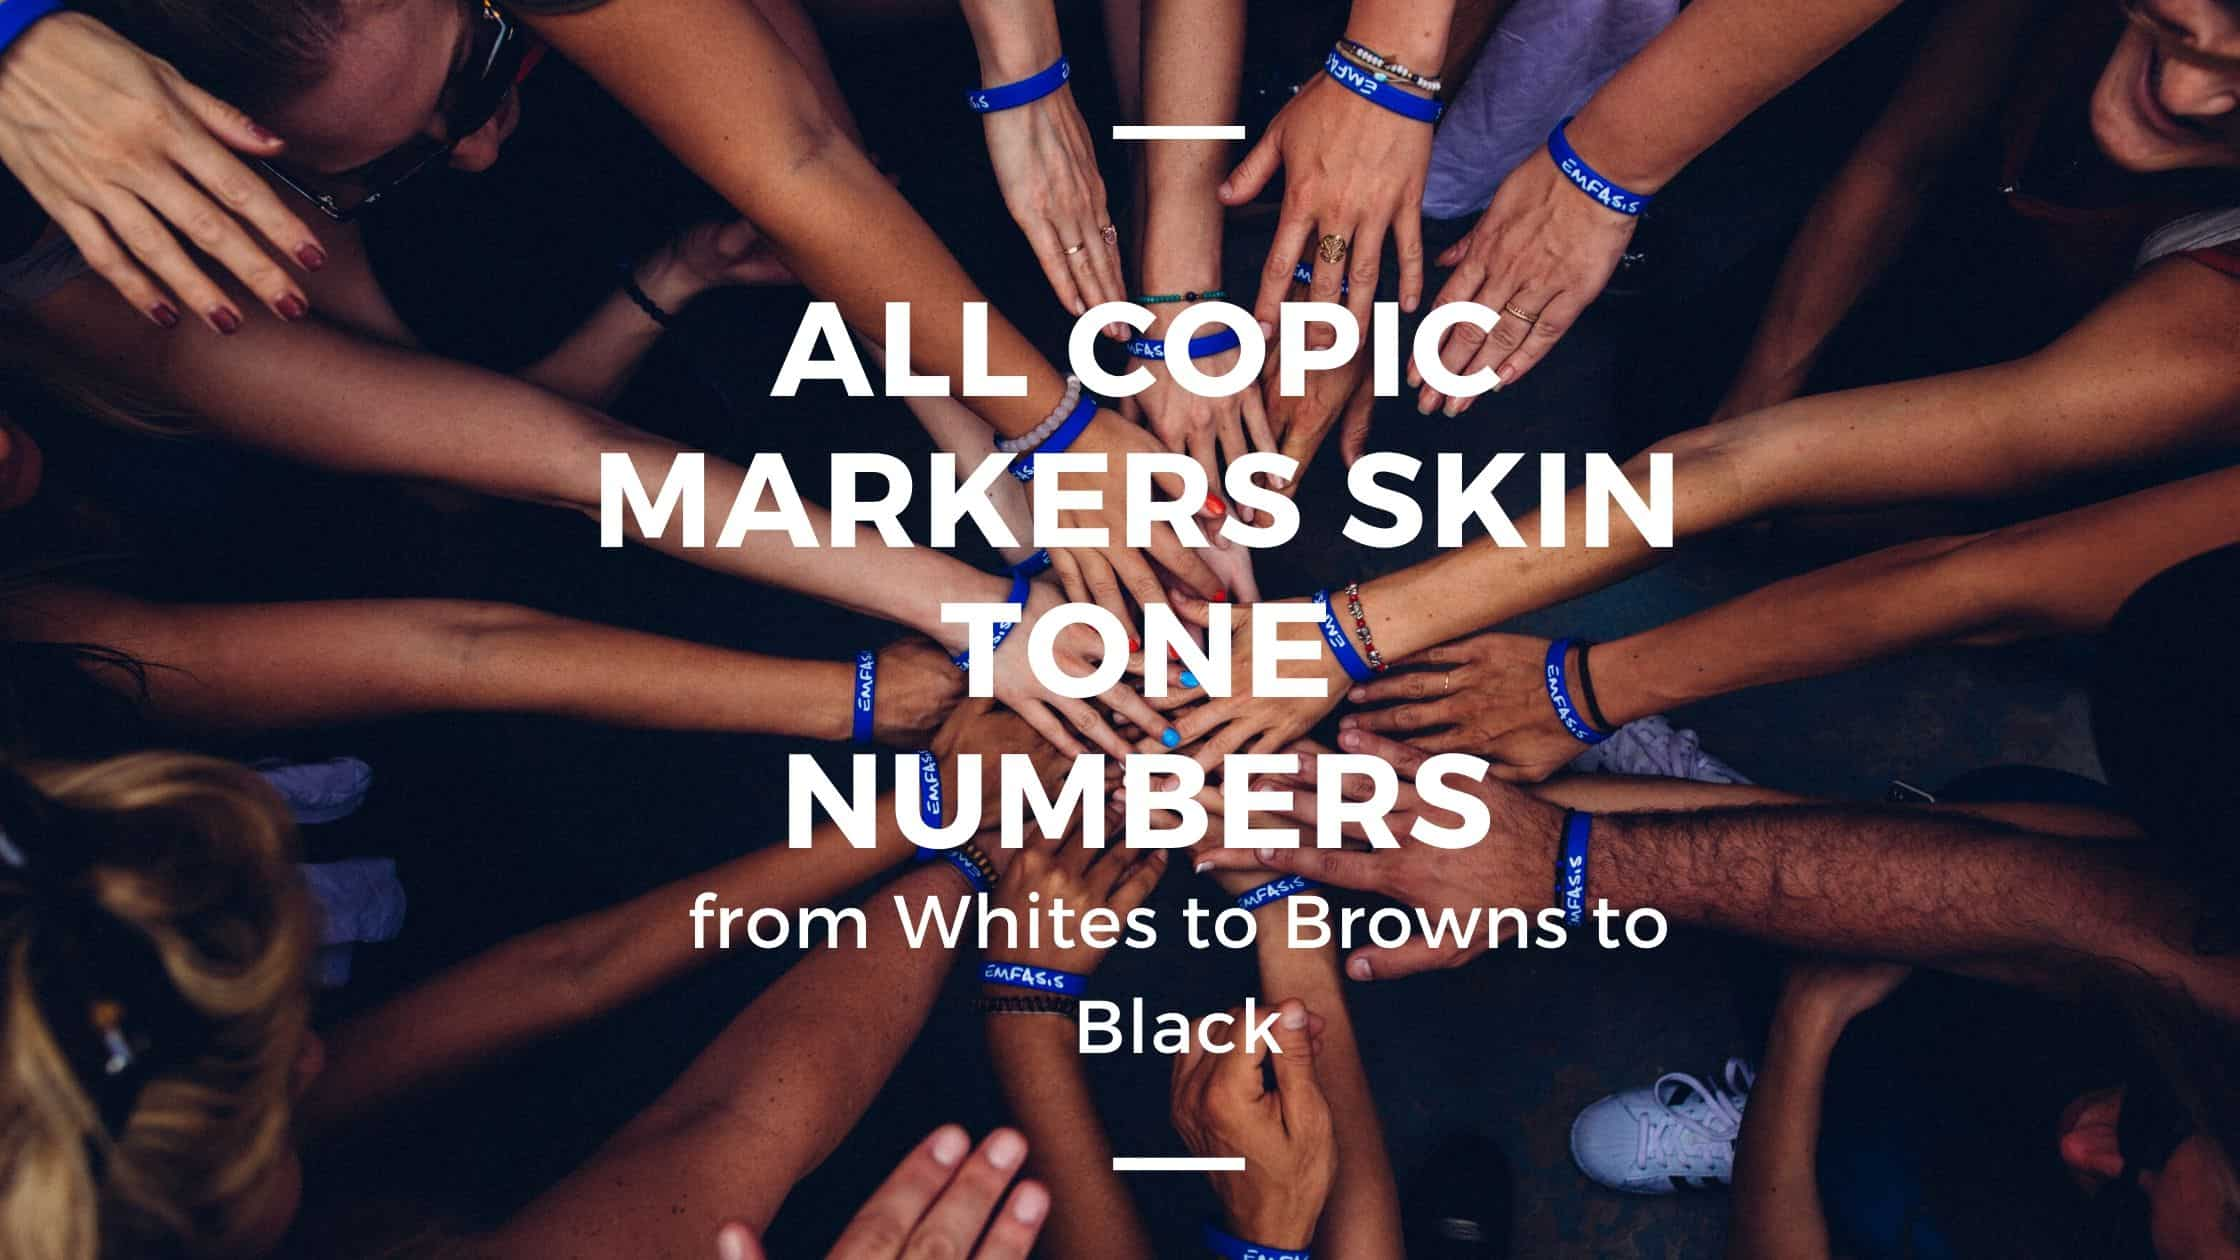 All Copic Markers Skin Tones Numbers